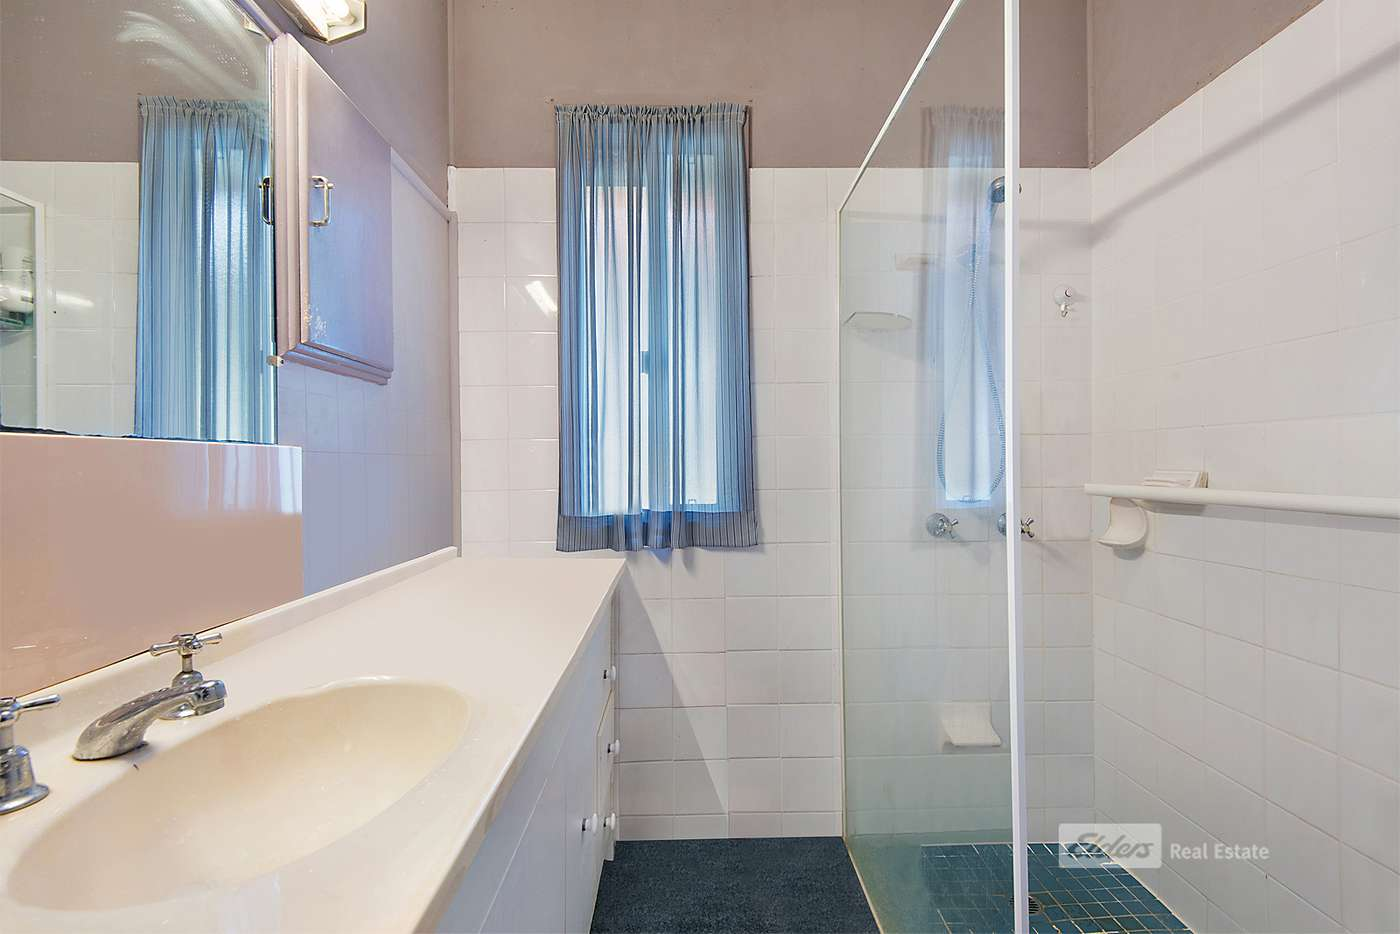 Seventh view of Homely house listing, 15 Benfield St, Mitchelton QLD 4053